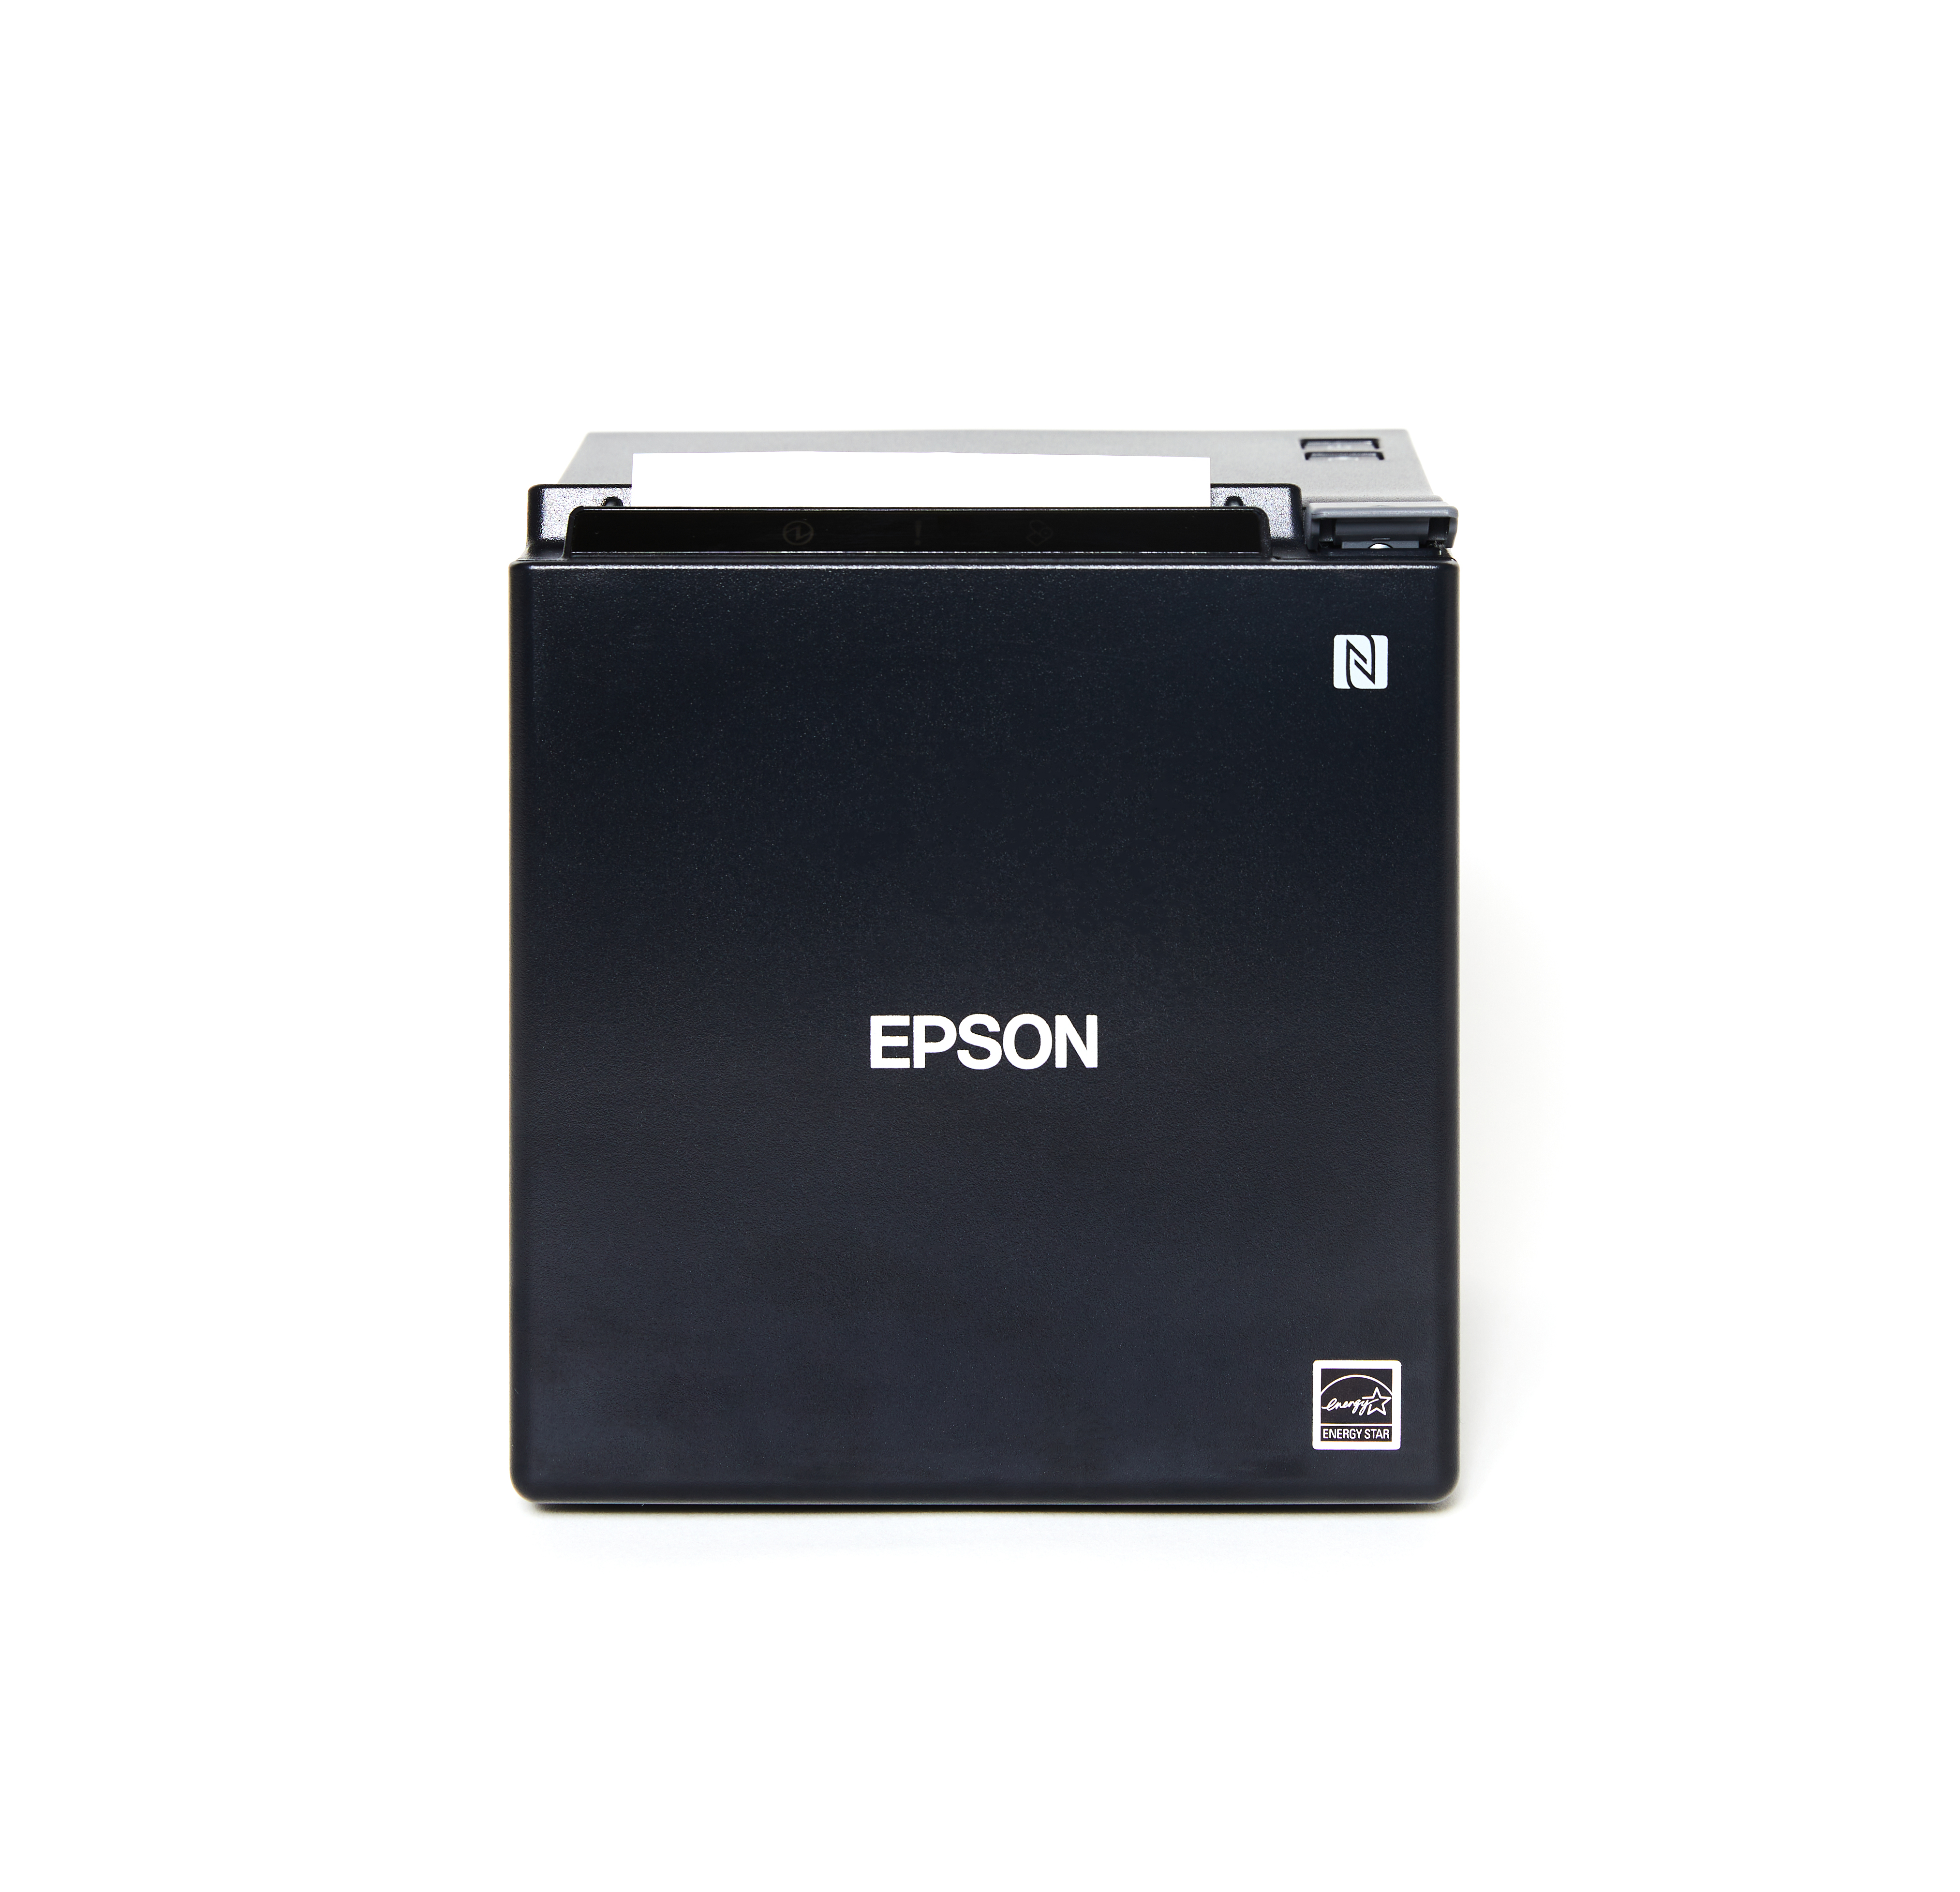 Product_2020_0038_EPSON_Printer_FRONT.jpg